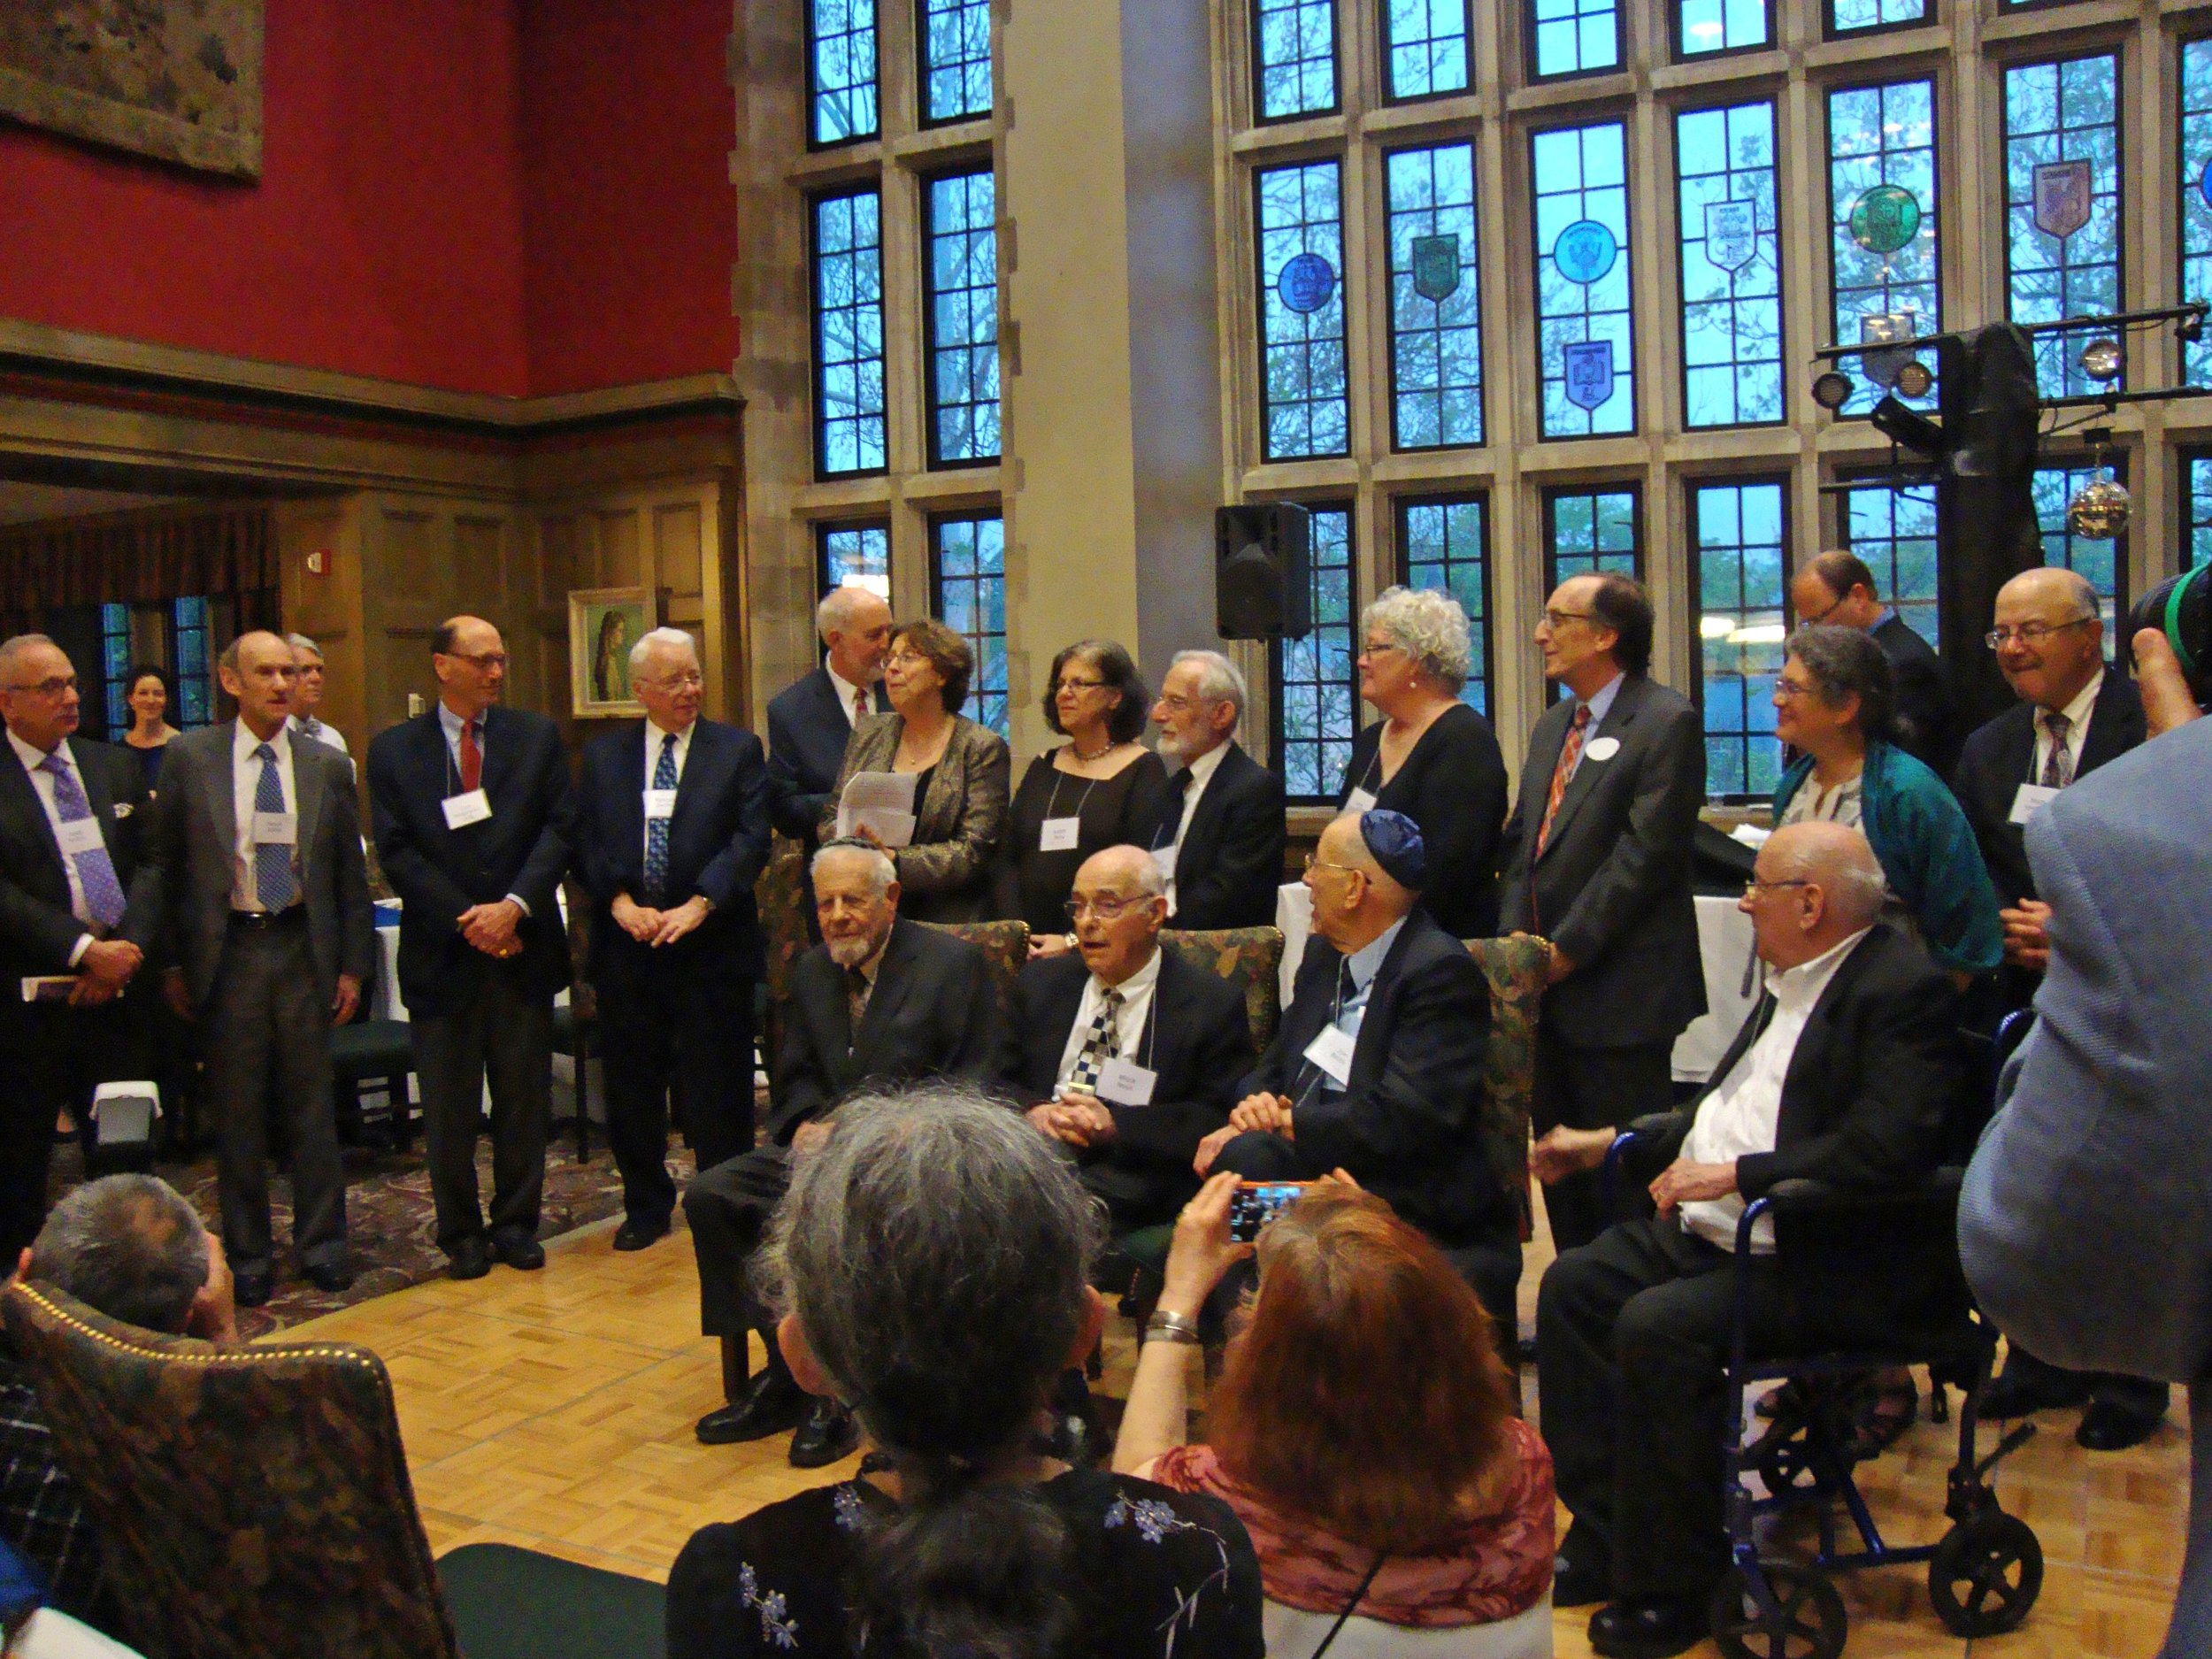 Past Presidents of Congregation Beth Shalom are honored at our 50th Anniversary Gale, May 2015.